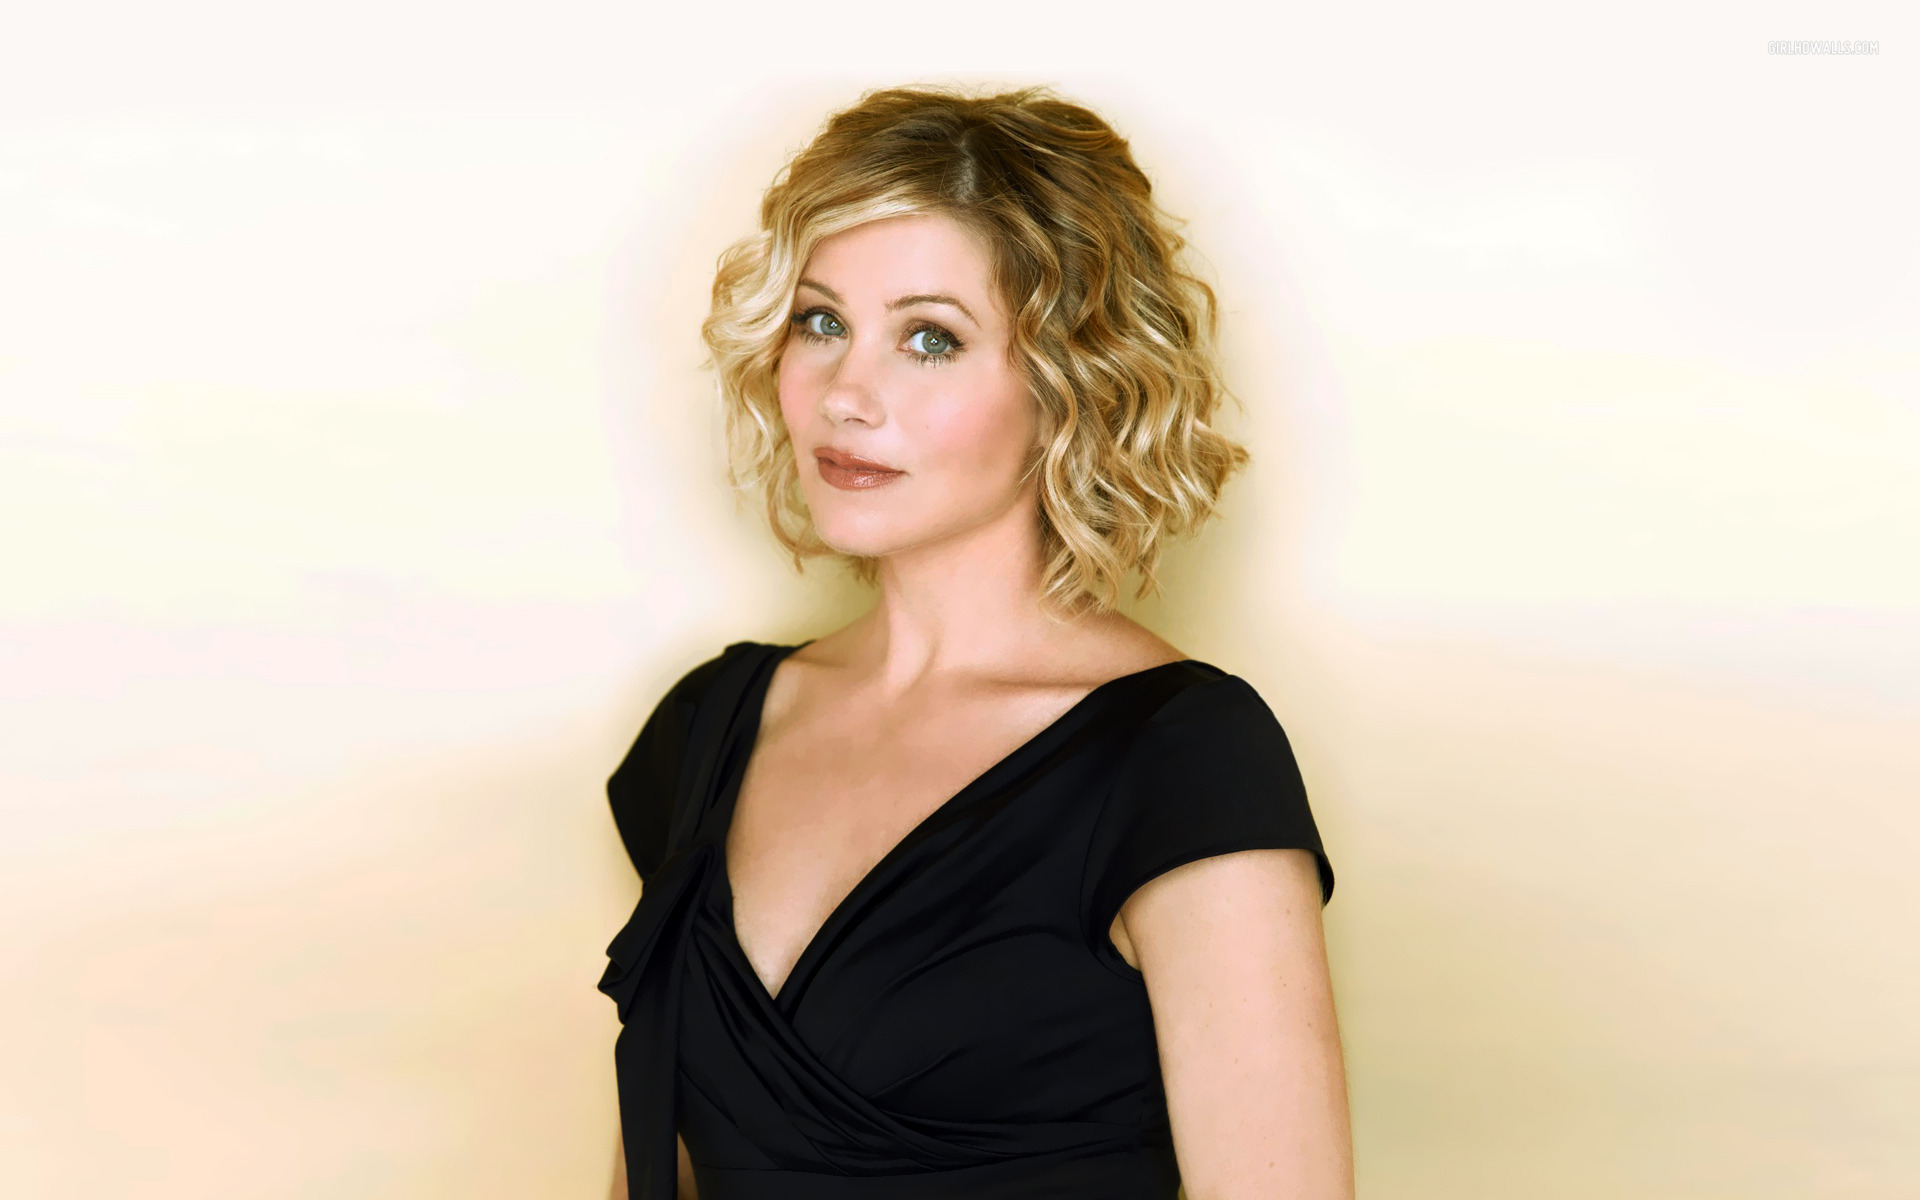 Christina Applegate Wallpapers High Resolution and Quality 1920x1200